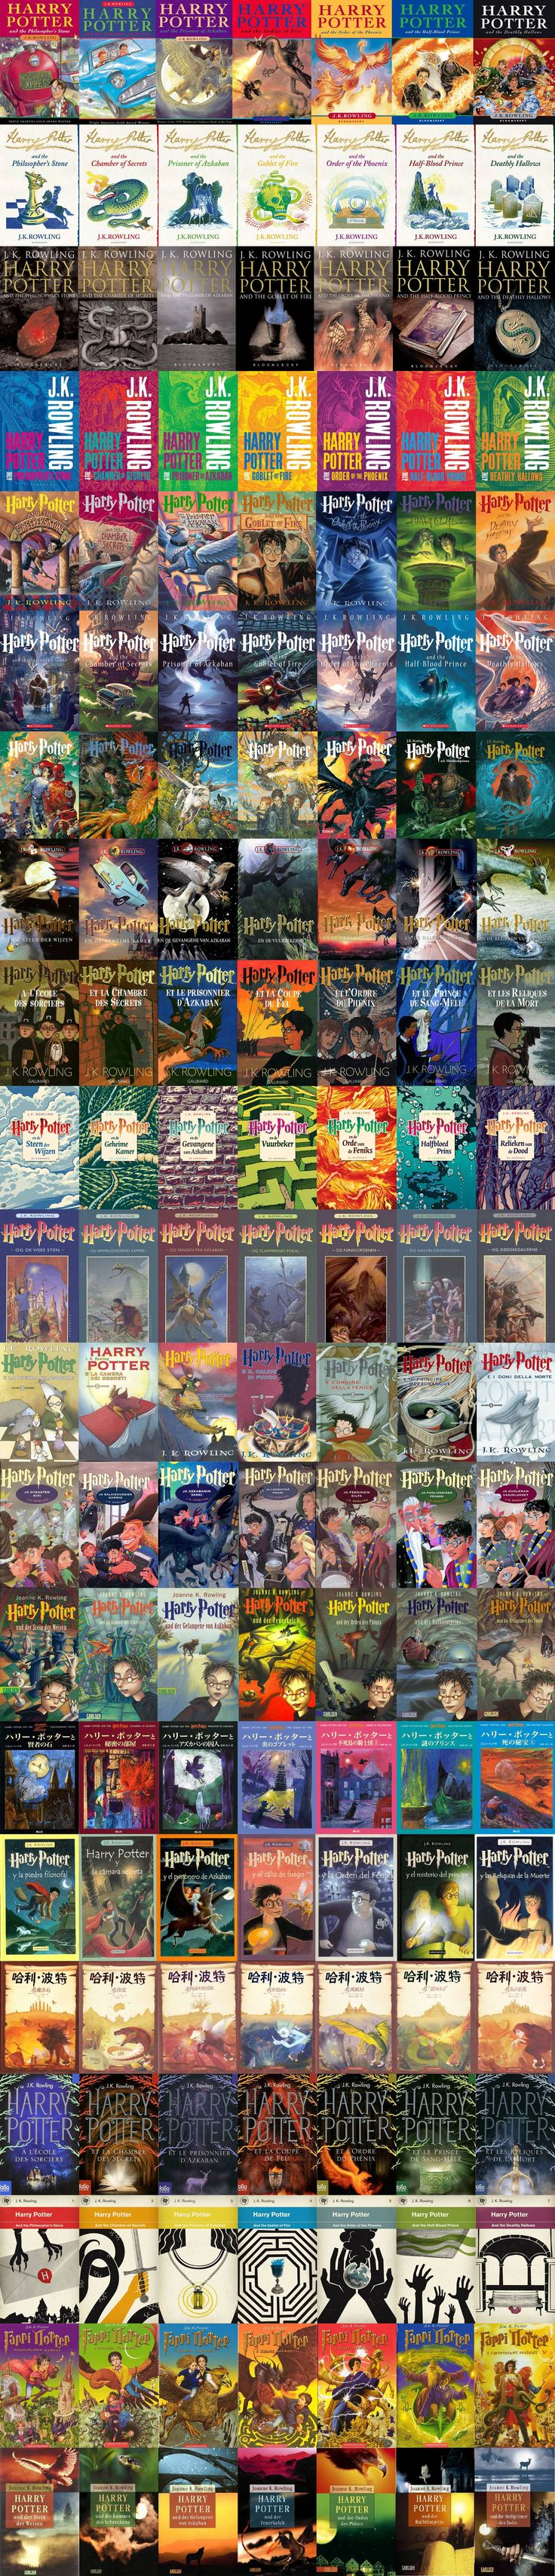 21 different cover art styles of Harry Potter - Imgur